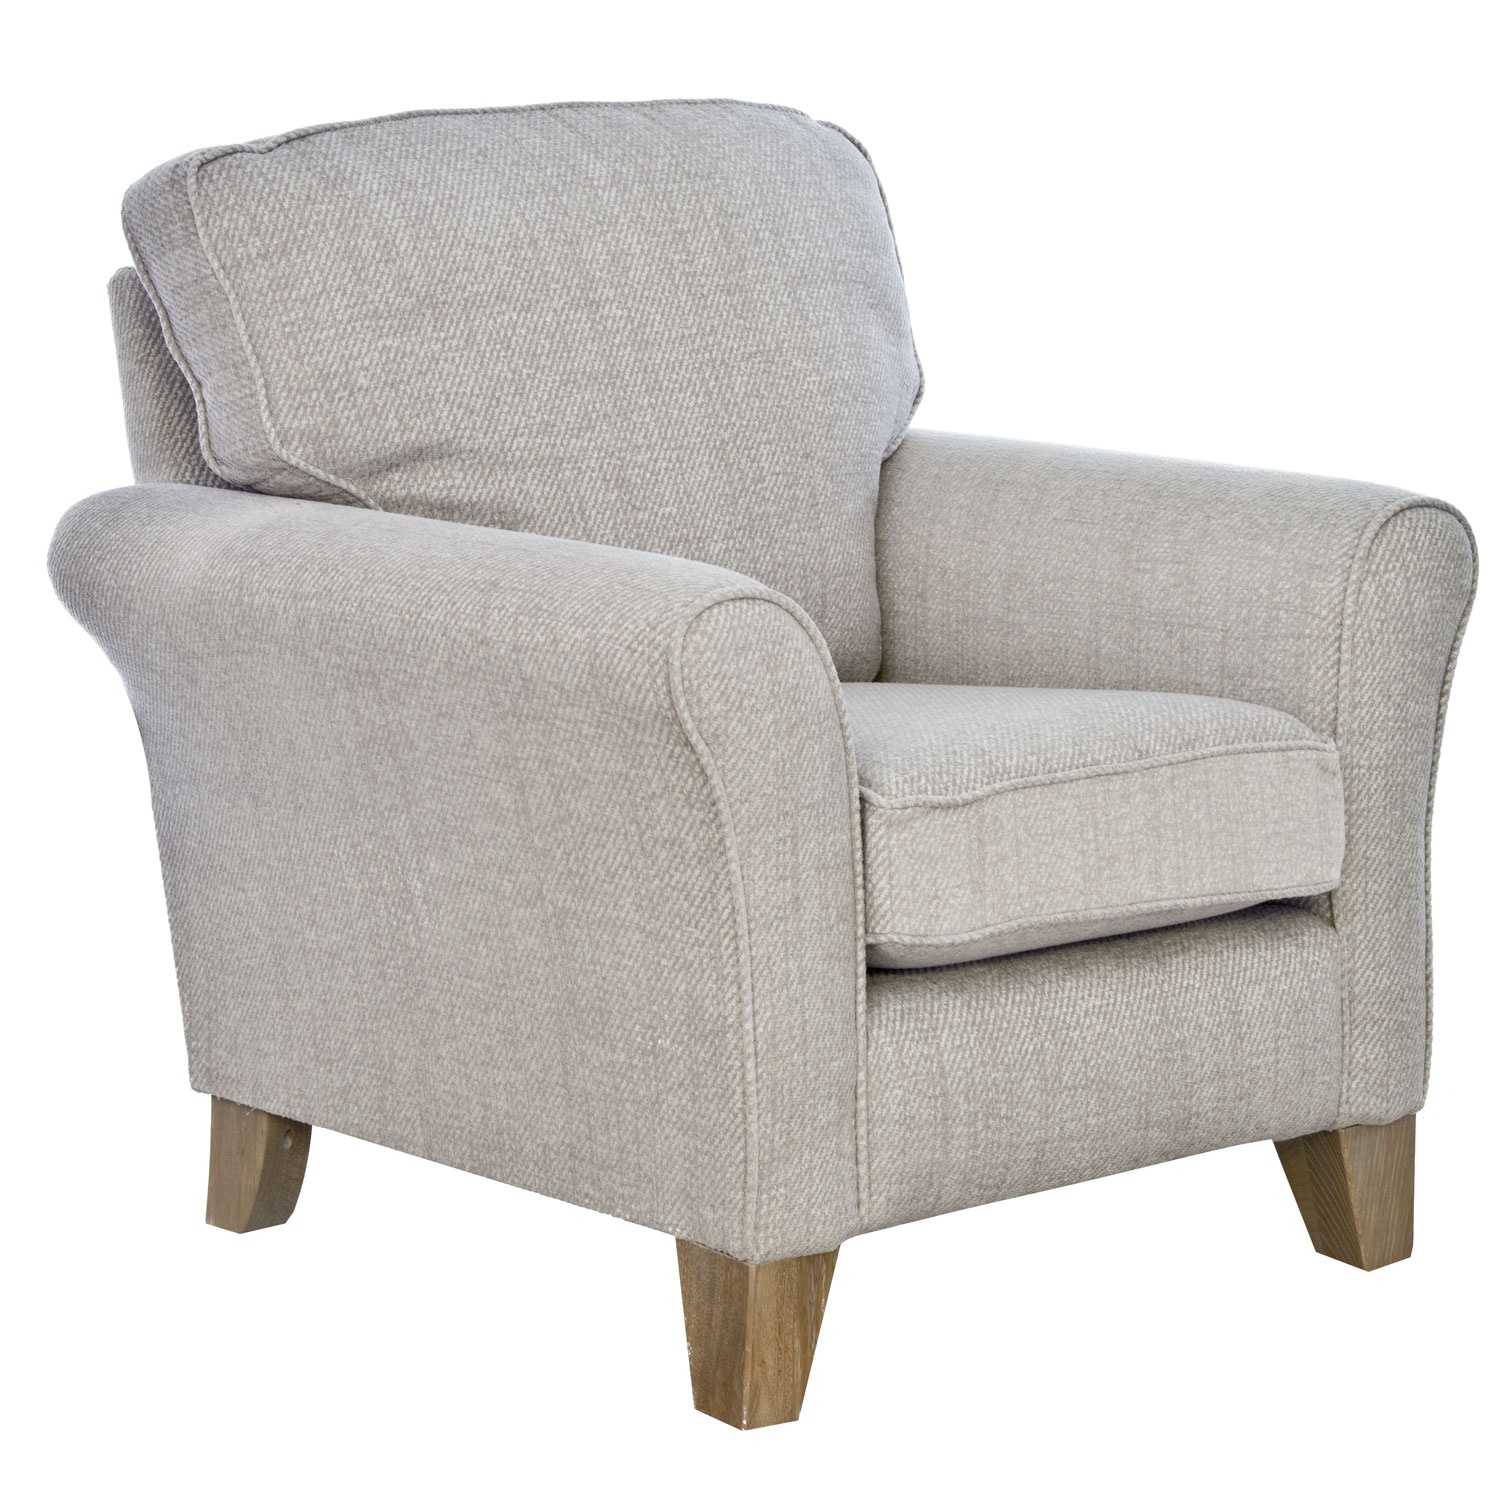 Image of Casa Georgia Accent Fabric Chair